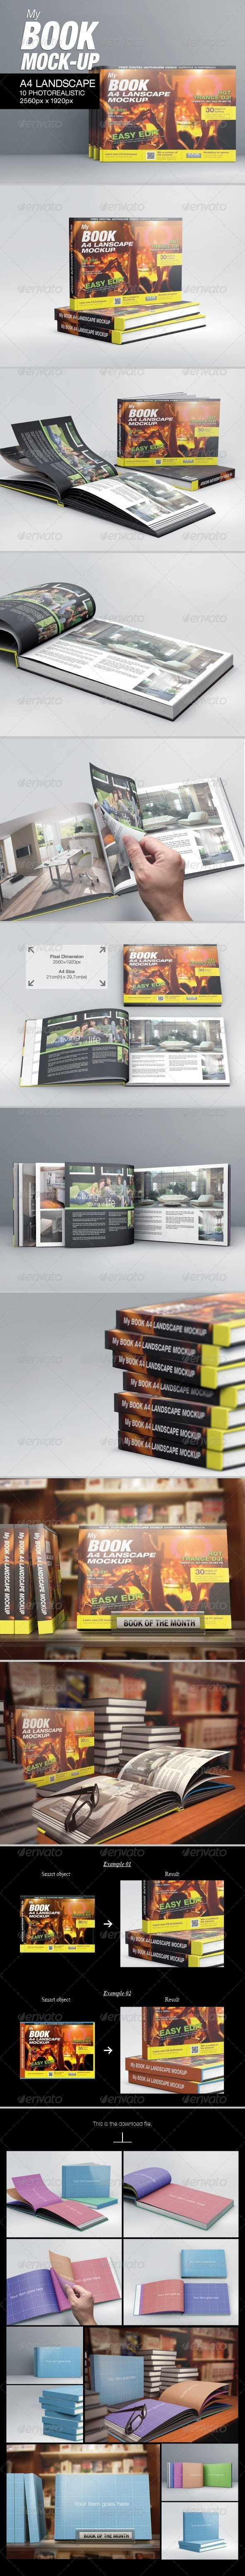 GraphicRiver MyBook A4 Landscape Mock-Up 6323795